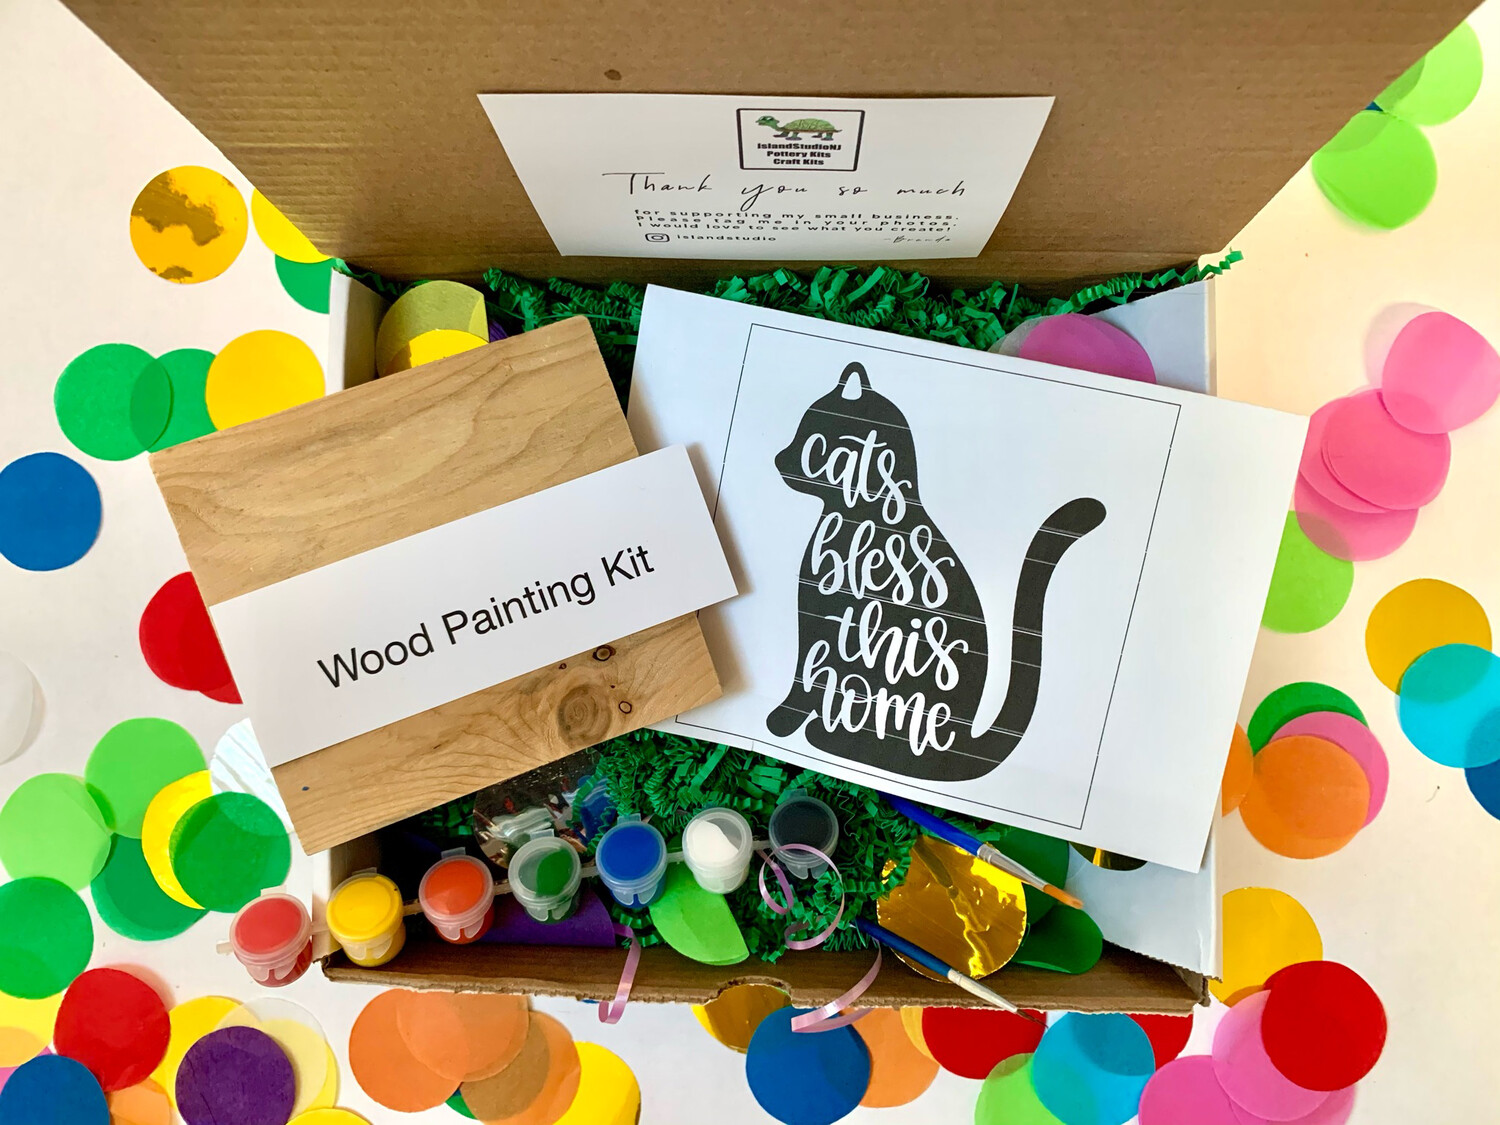 CATS BLESS THIS HOME Paint Your Own Wood Sign Kit